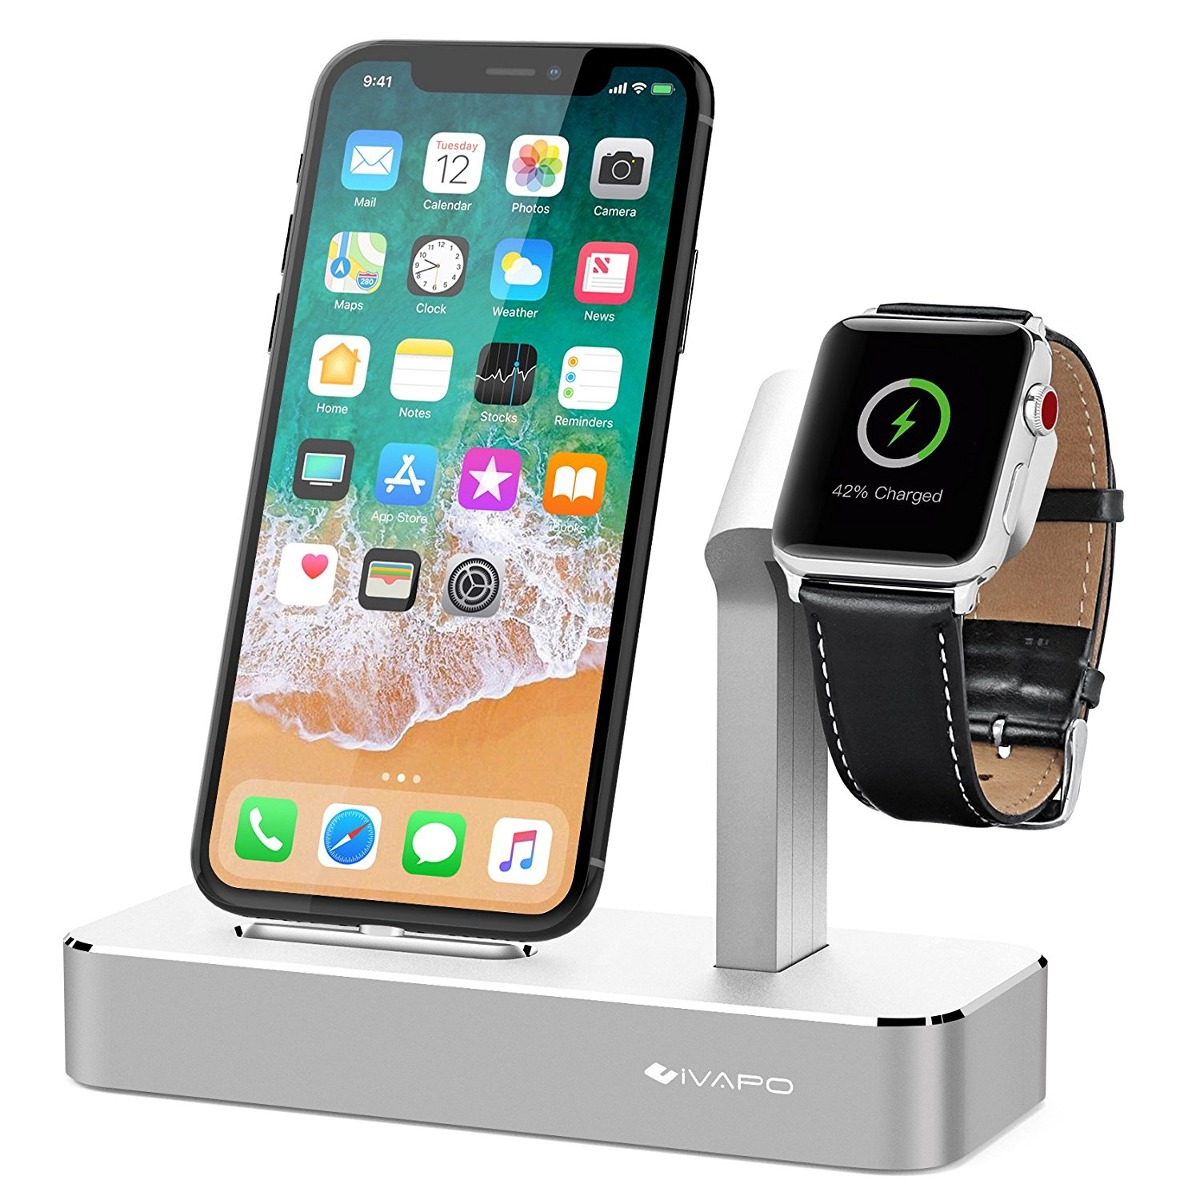 2ebb4c8f1c2 Reloj Serie 2 De Apple Soporte, iPhone 7 / 7plus / 6s / 6s ...